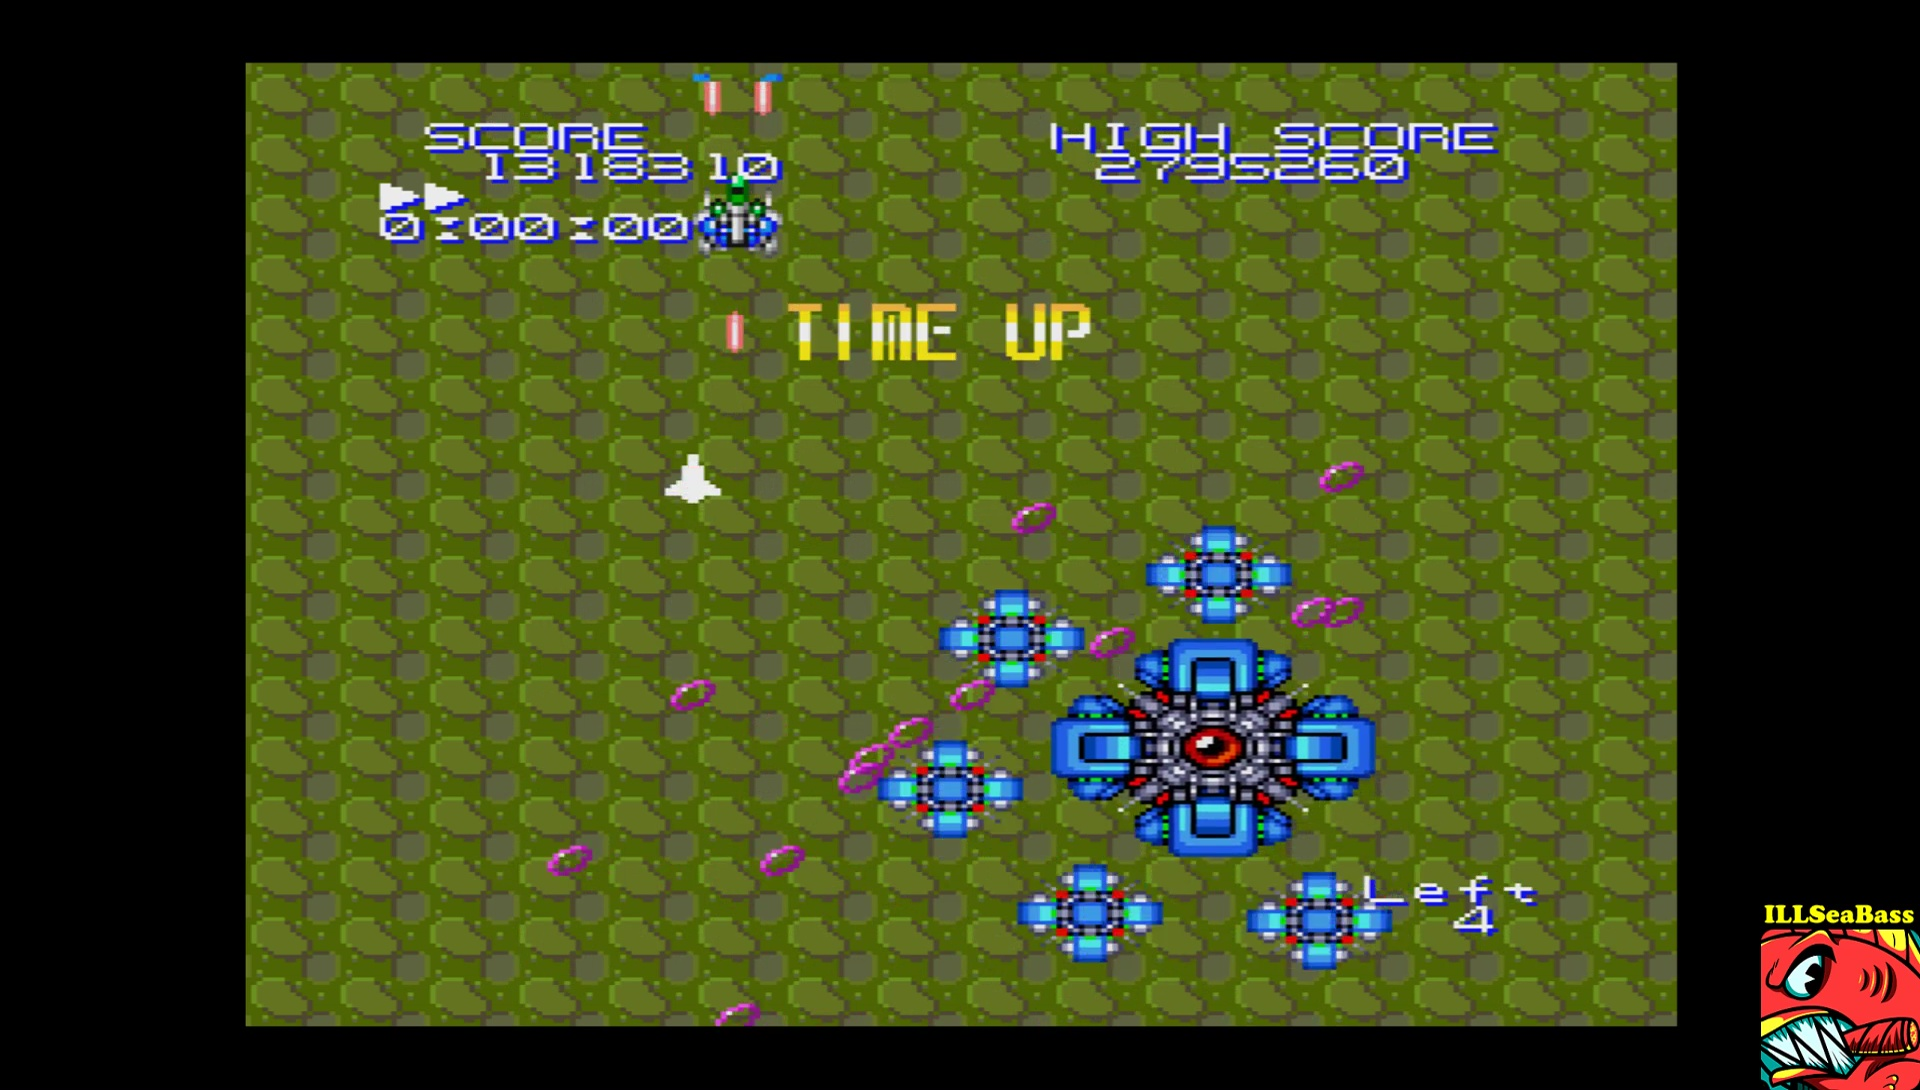 ILLSeaBass: Super Star Shooter: Version 2.00 [5 Minutes Game] (Sharp X68000 Emulated) 1,318,310 points on 2017-06-24 11:43:12